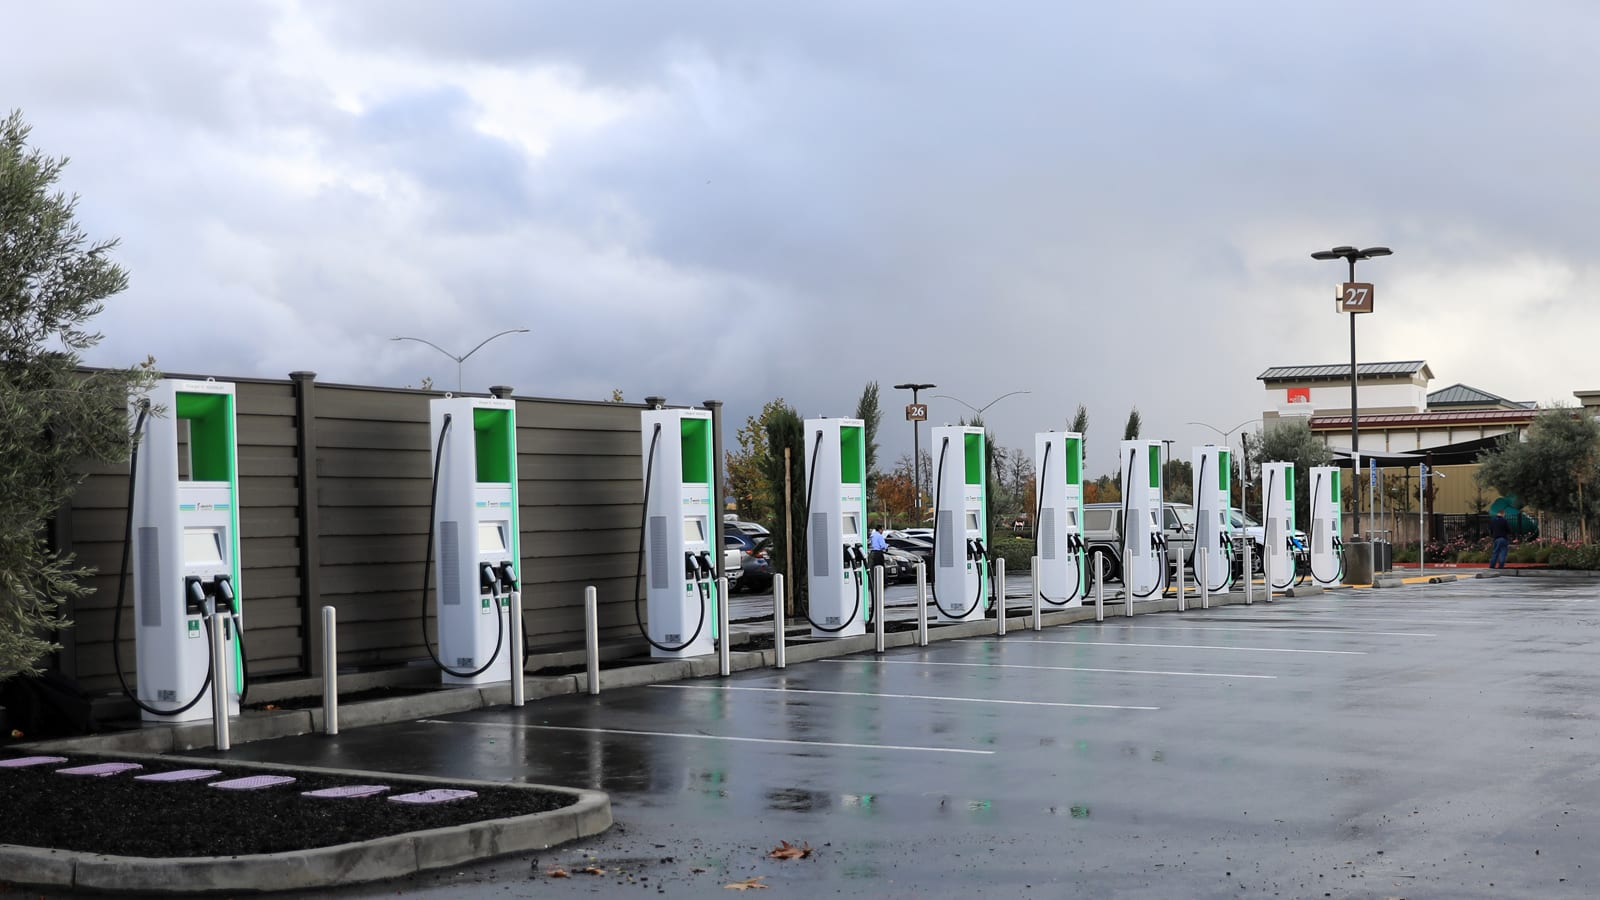 Electrify America installs California's first 350kW EV chargers